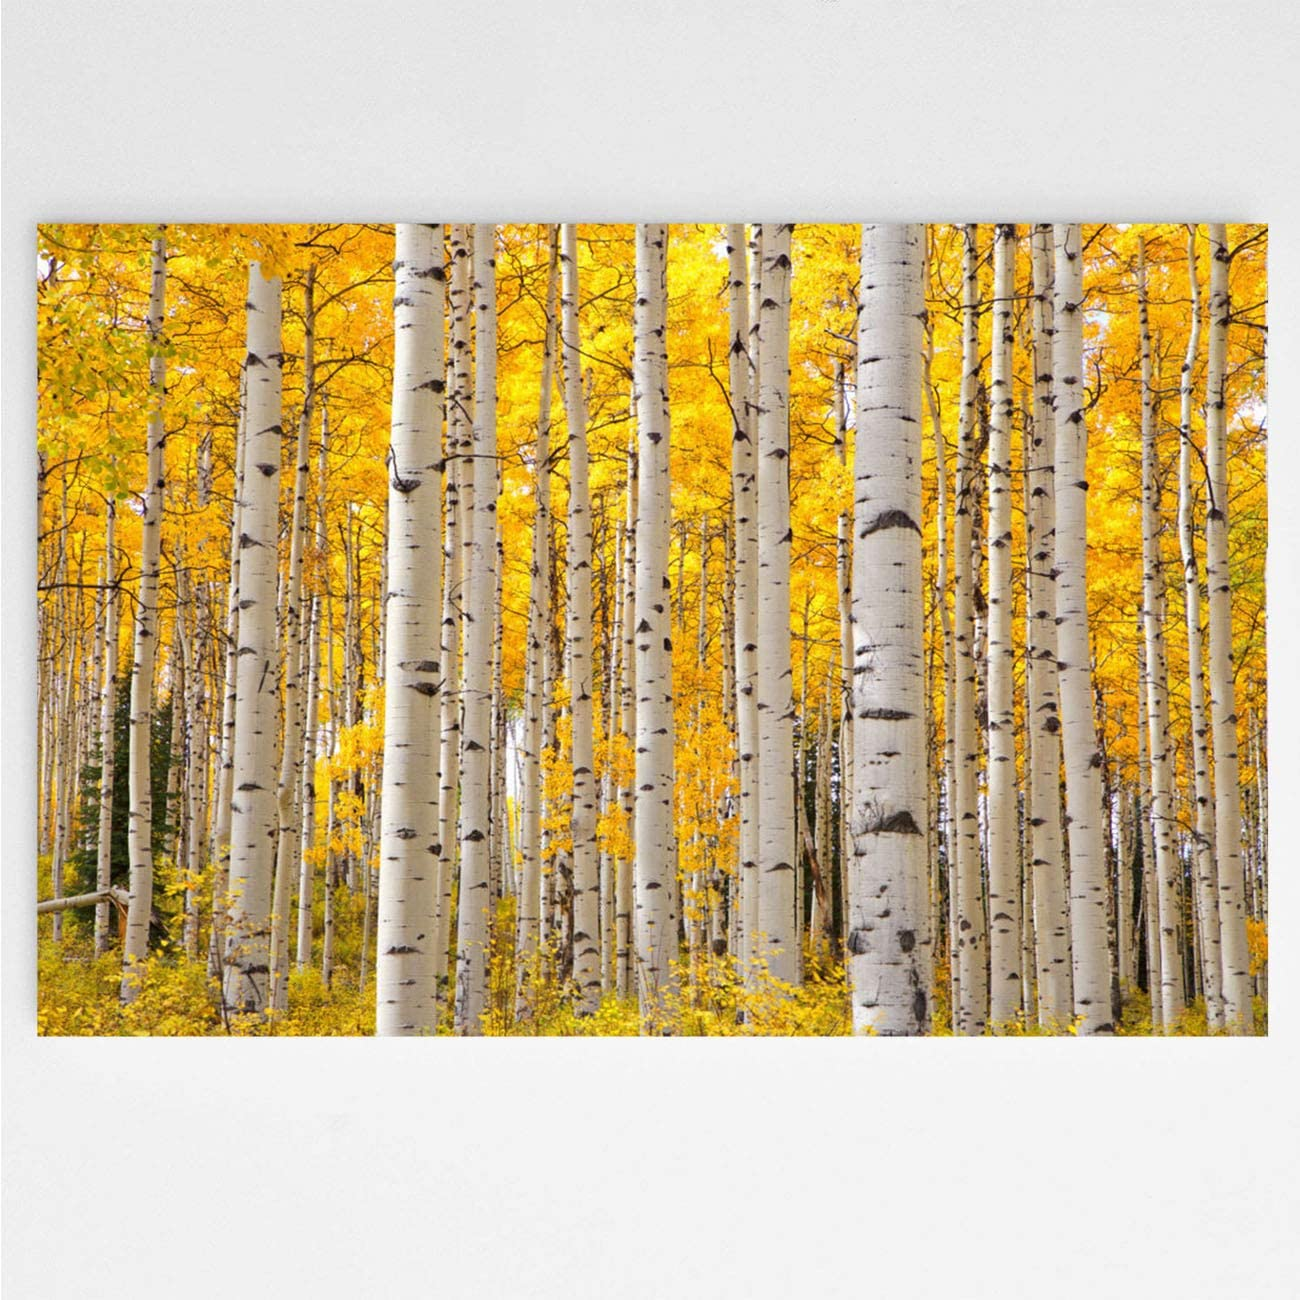 Trees Colorado Autumn Tree Canvas Wall Art Prints Picture Aspen Trees In Colorado On A Beautiful Autumn Day Focusing On The Tree Trunks With A Focus On The Wall Art Canvas Prints Wall Decor 24x36 In